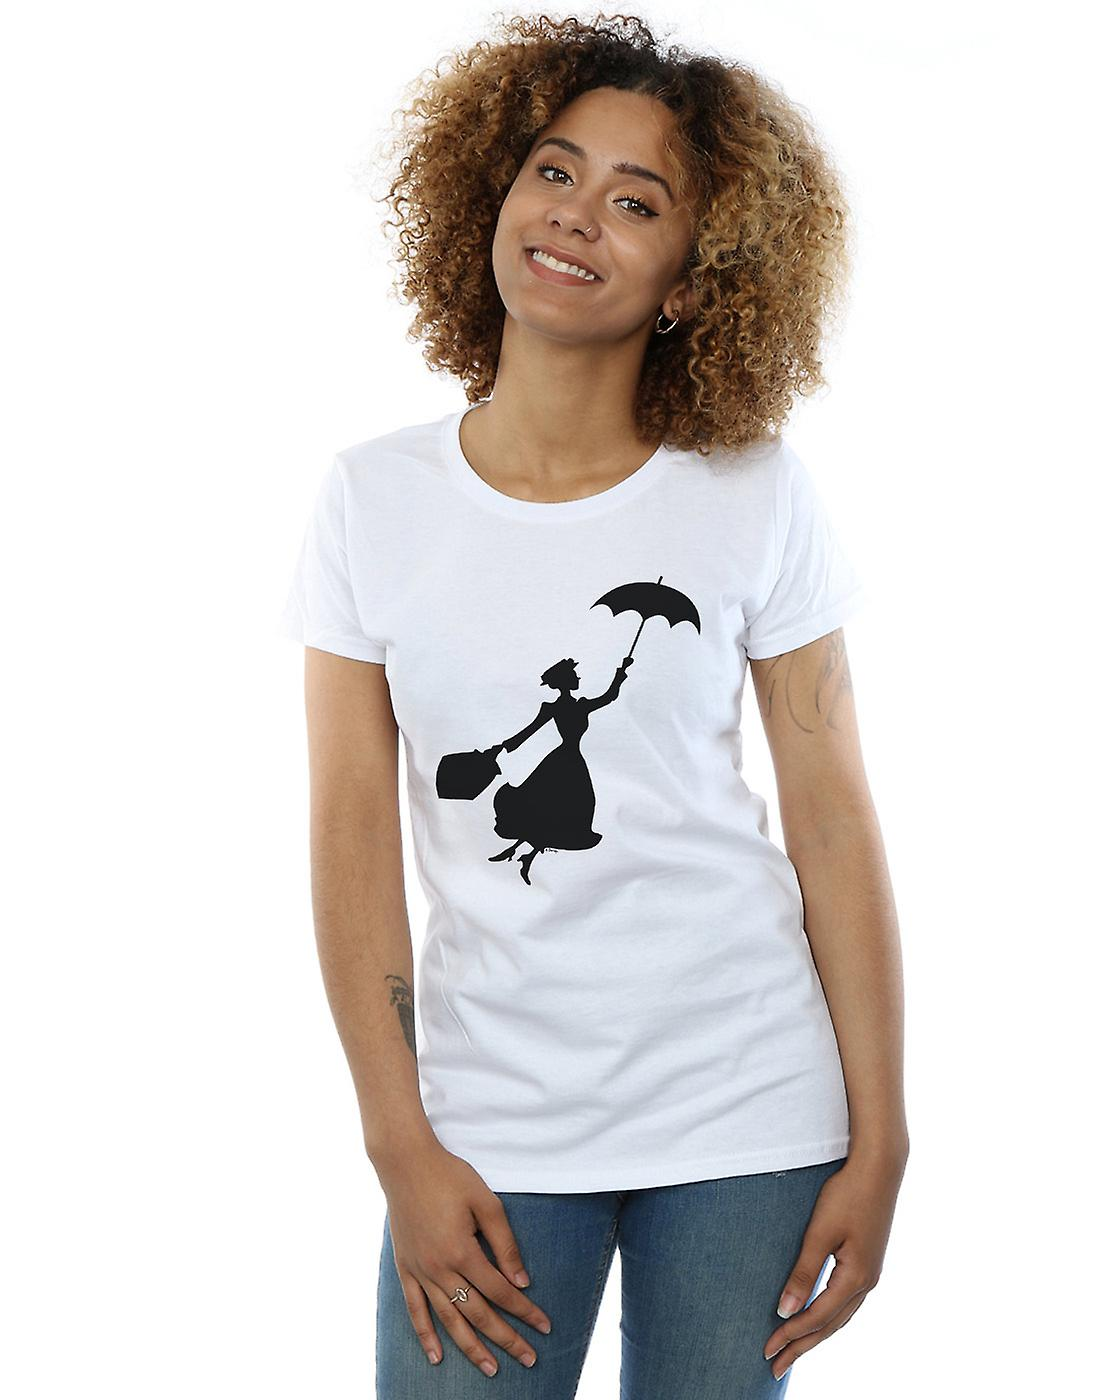 Disney Women's Mary Poppins Flying Silhouette T-Shirt